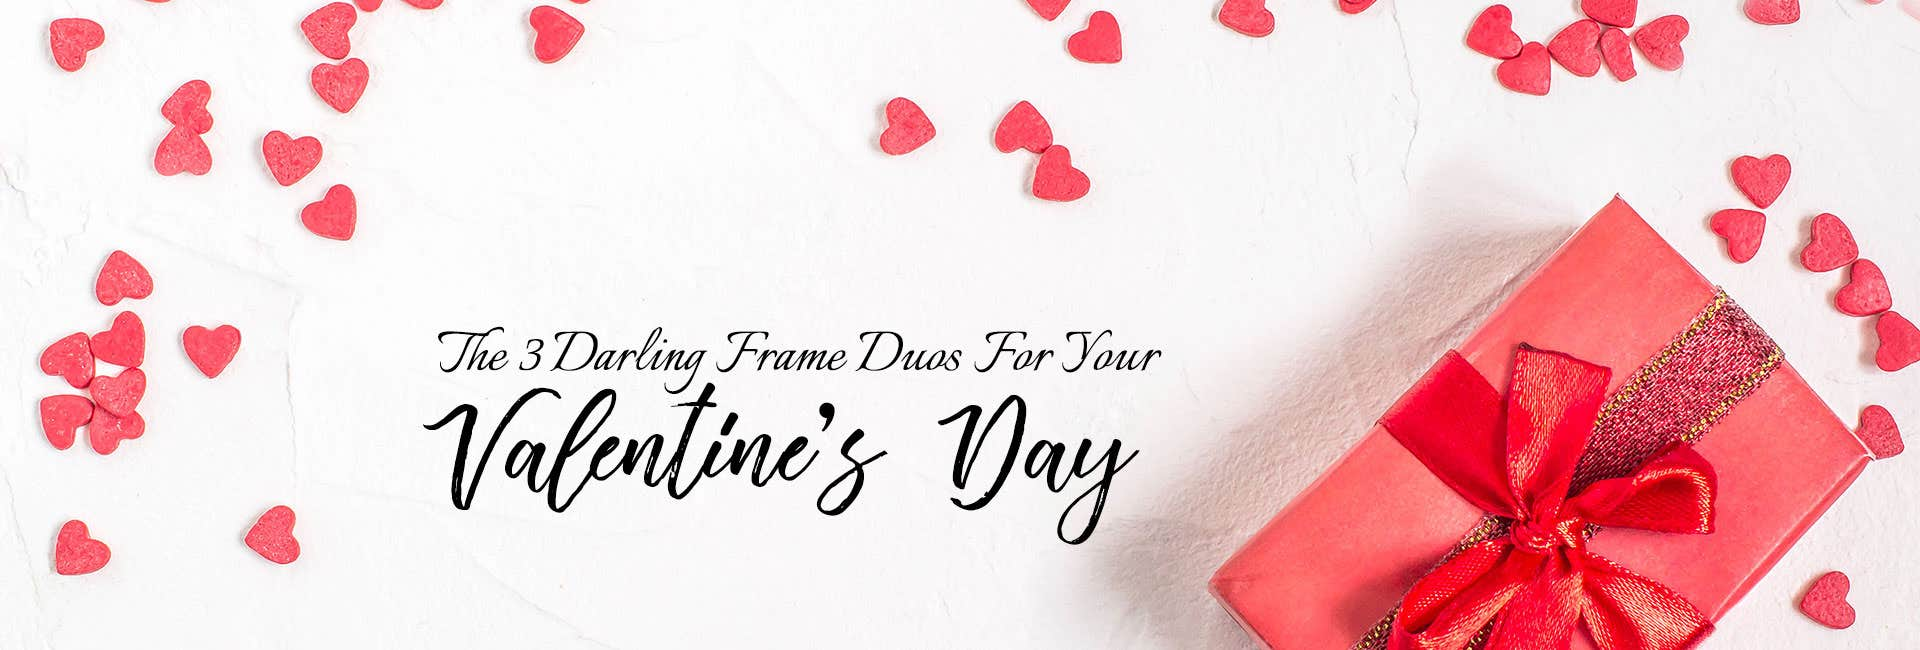 THE 3 DARLING FRAME DUOS FOR YOUR VALENTINE'S DAY